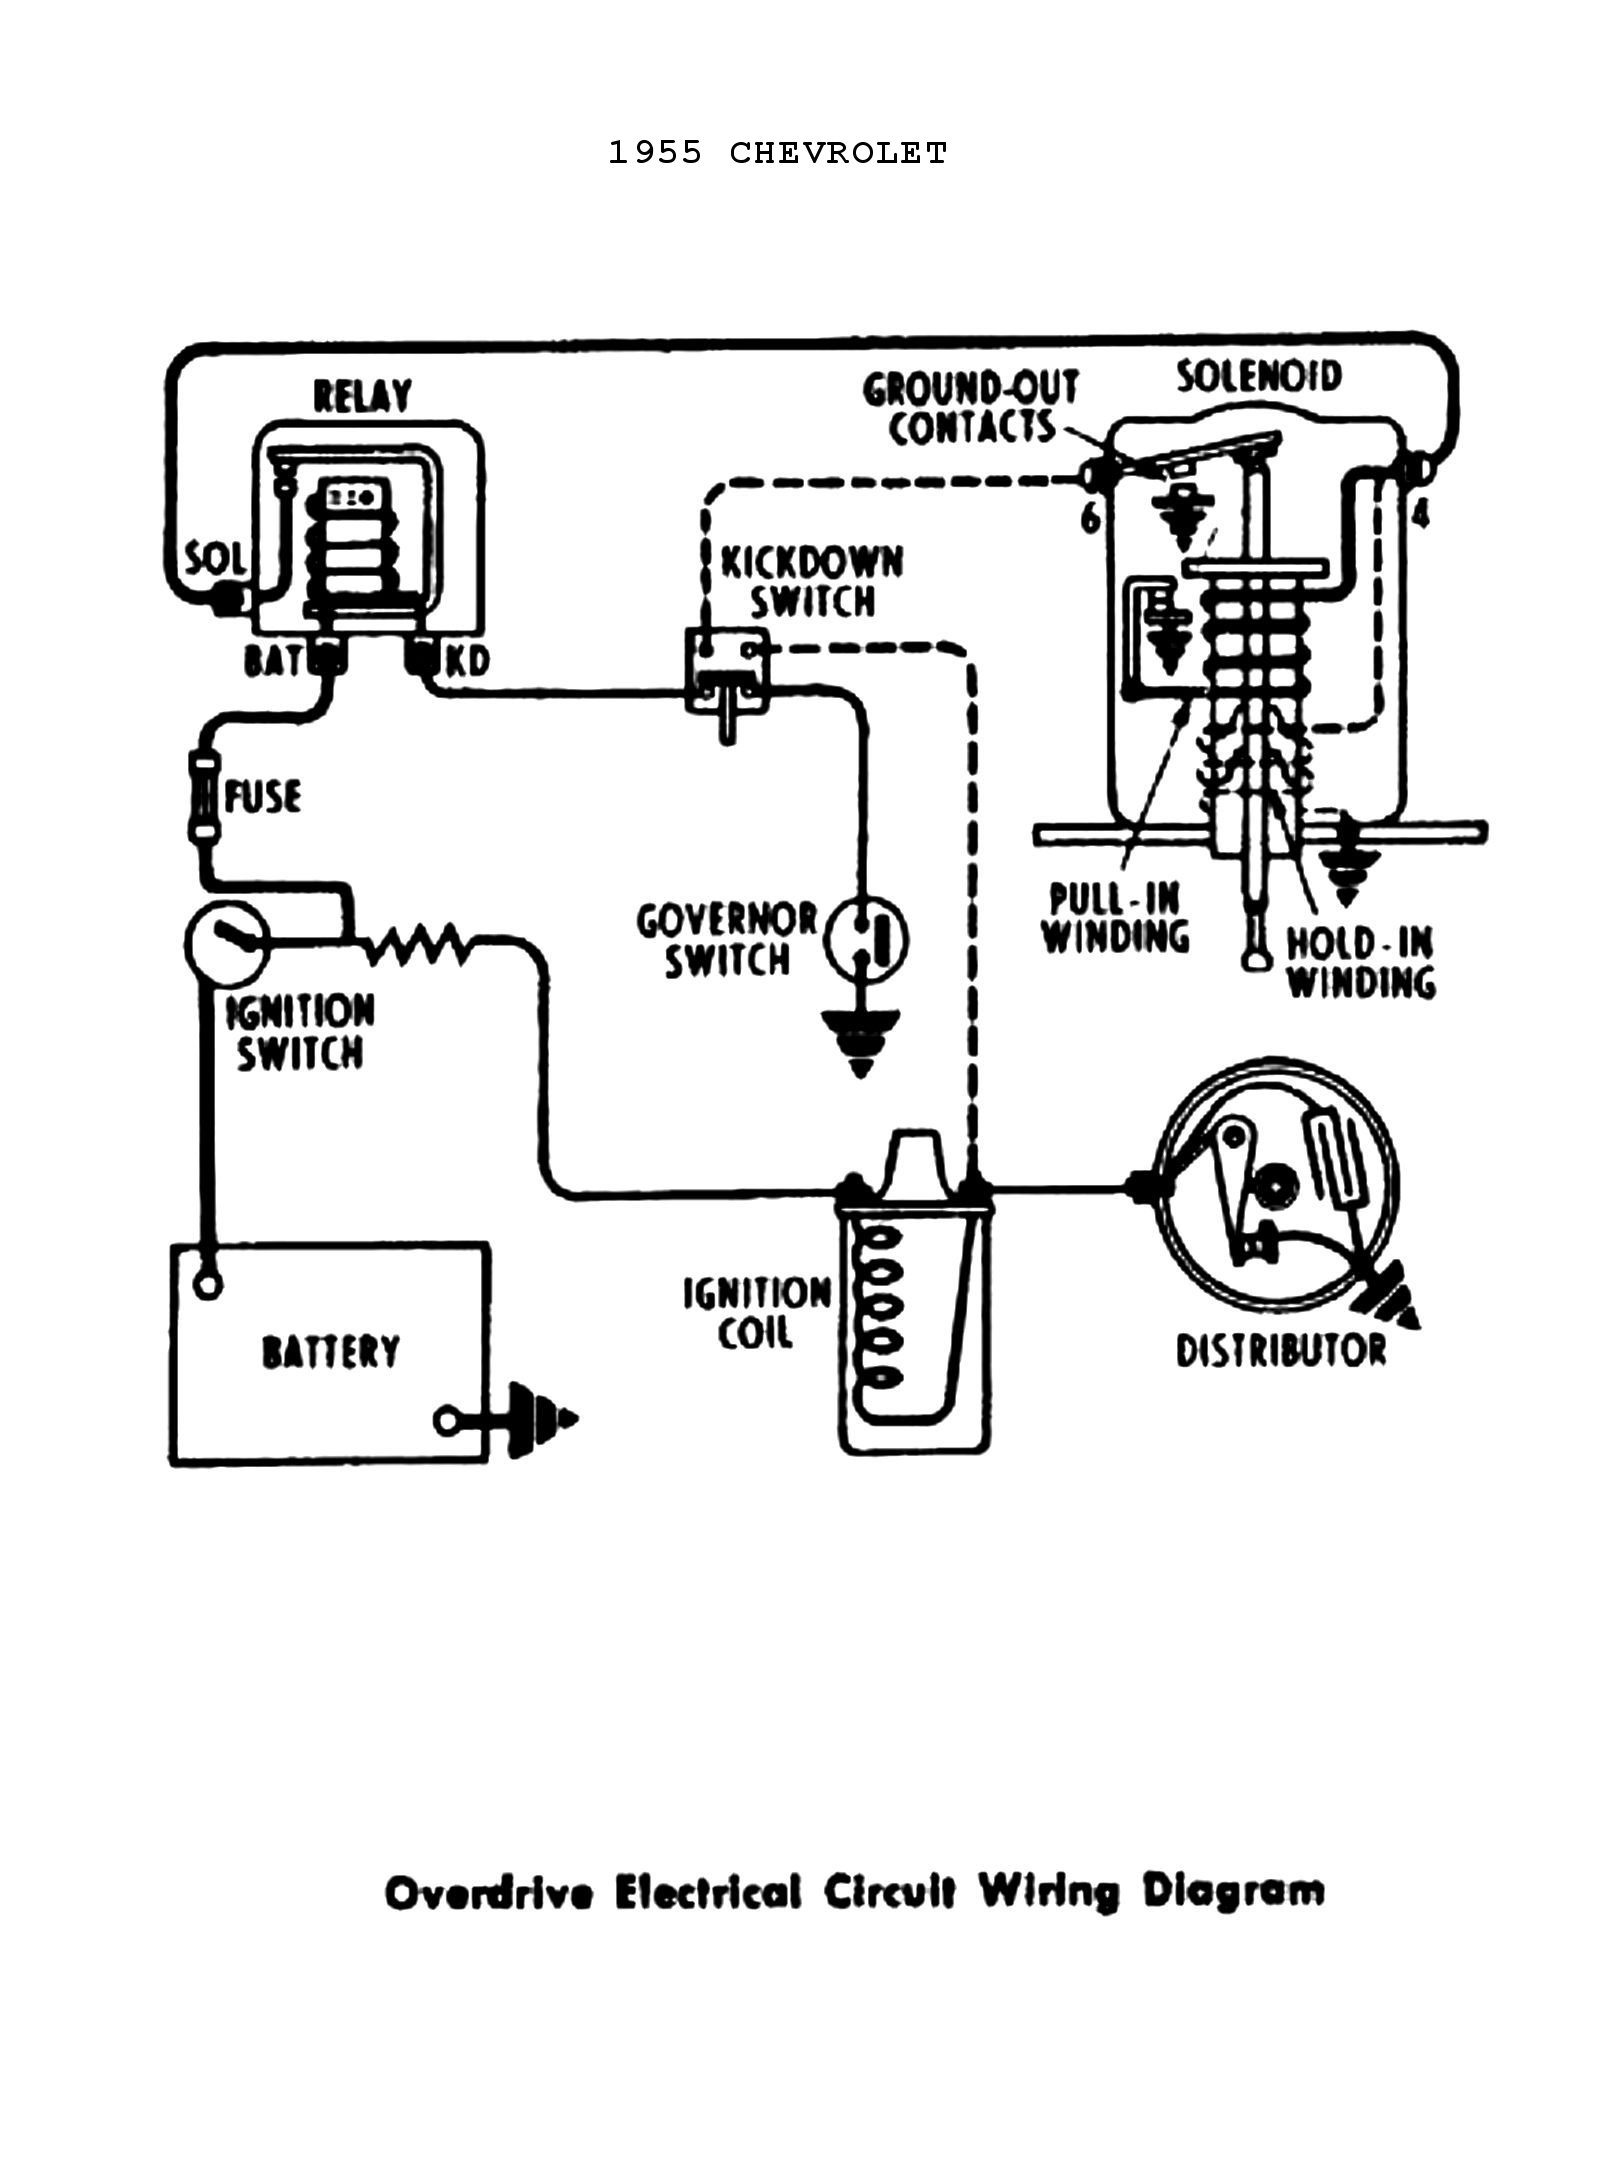 55odtrans1 chevy wiring diagrams circuit wiring diagram at gsmportal.co